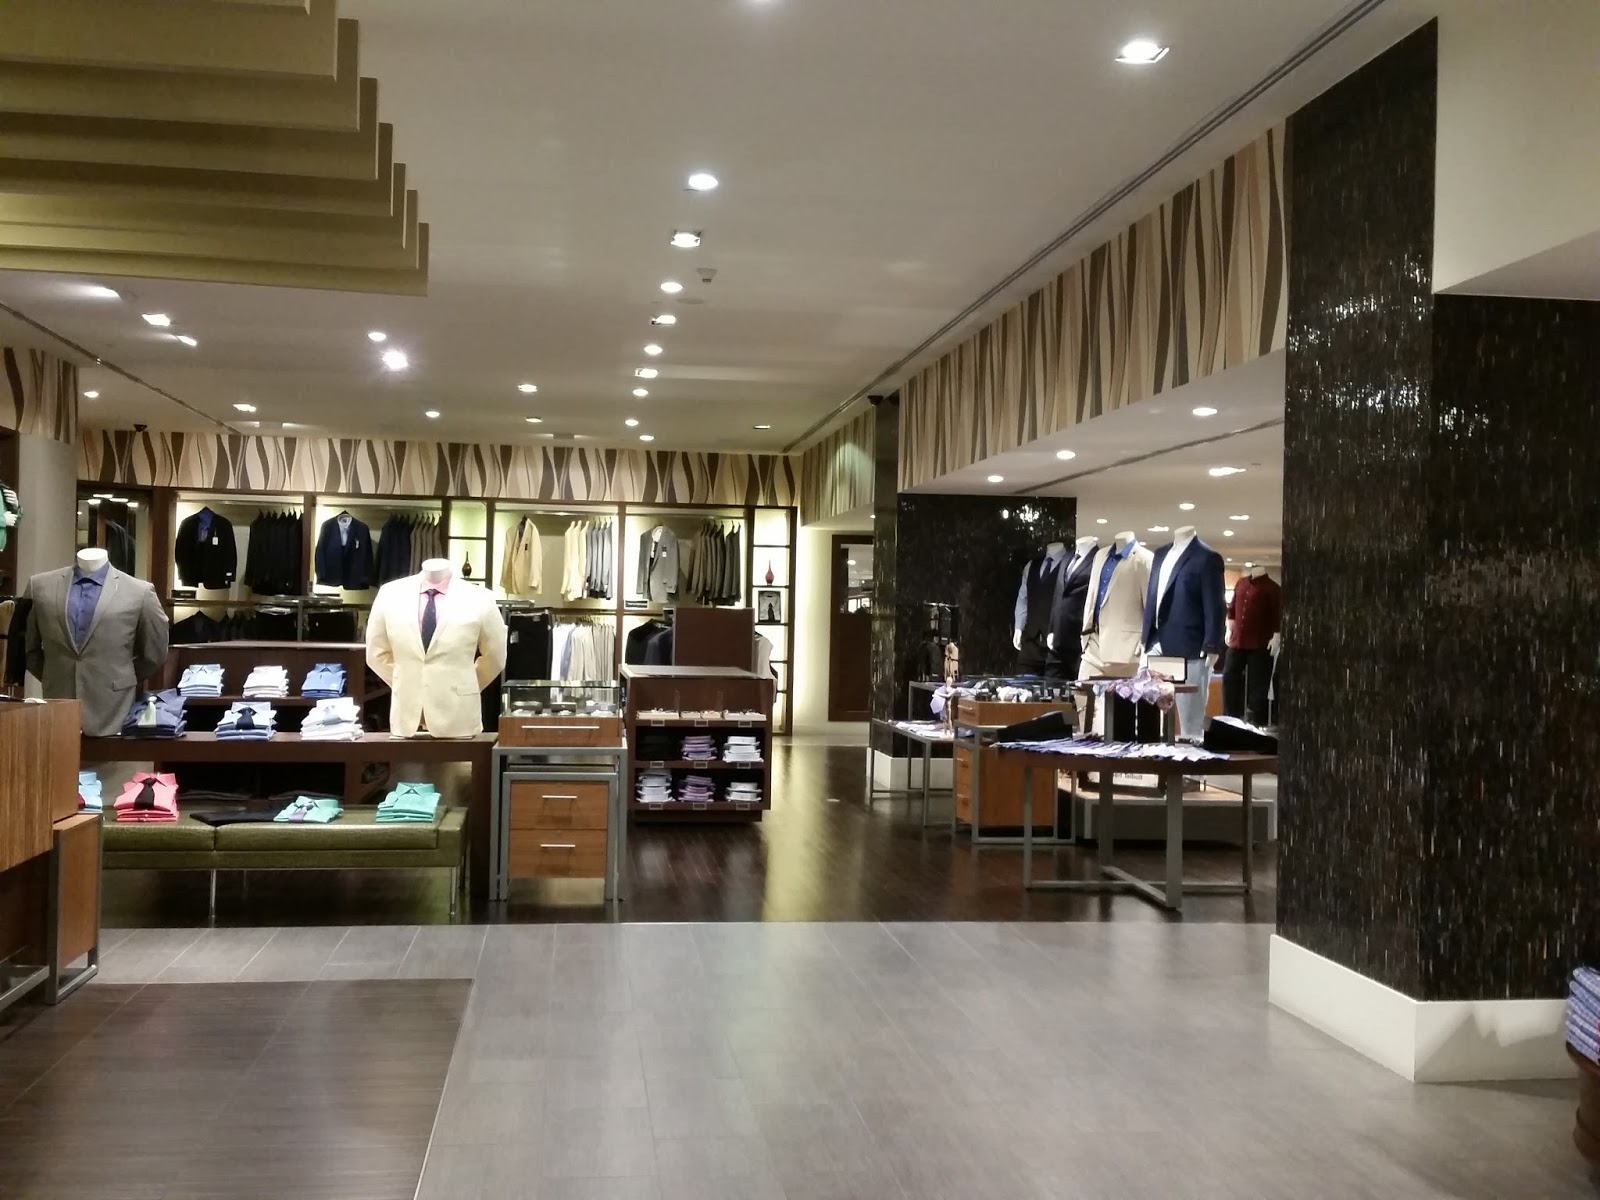 b06b52eeea8 It s a clean organized shop with everything a man could want including an  area with larger size shoes. I think it s time for Al Shaya to bring Lane  Bryant ...